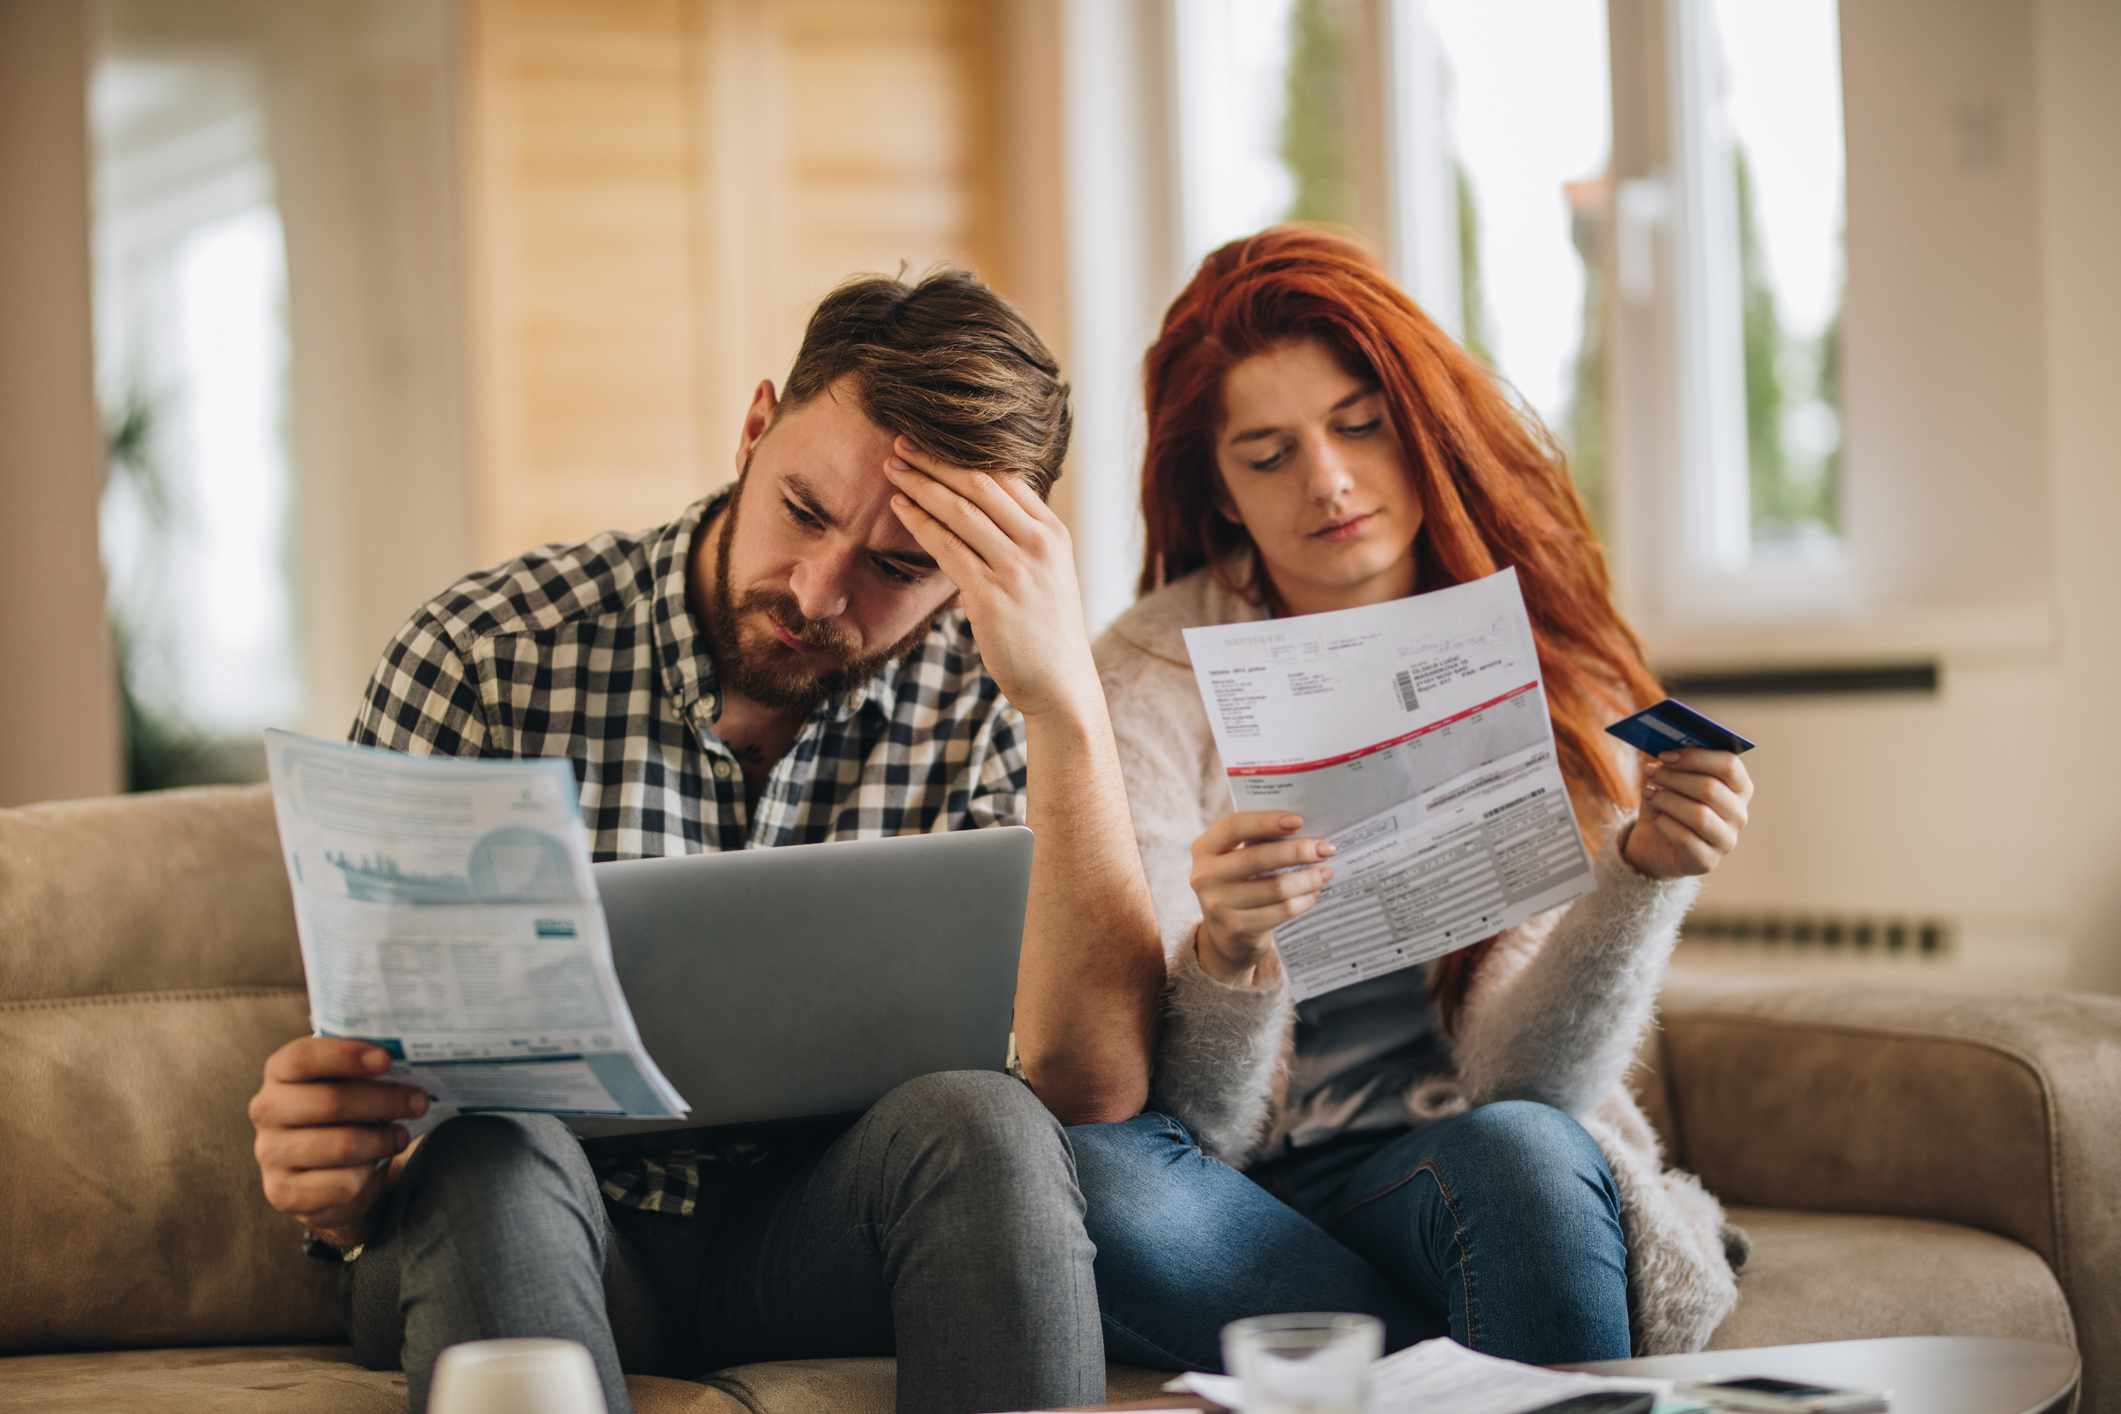 Couple looking distressed as they review credit card bills